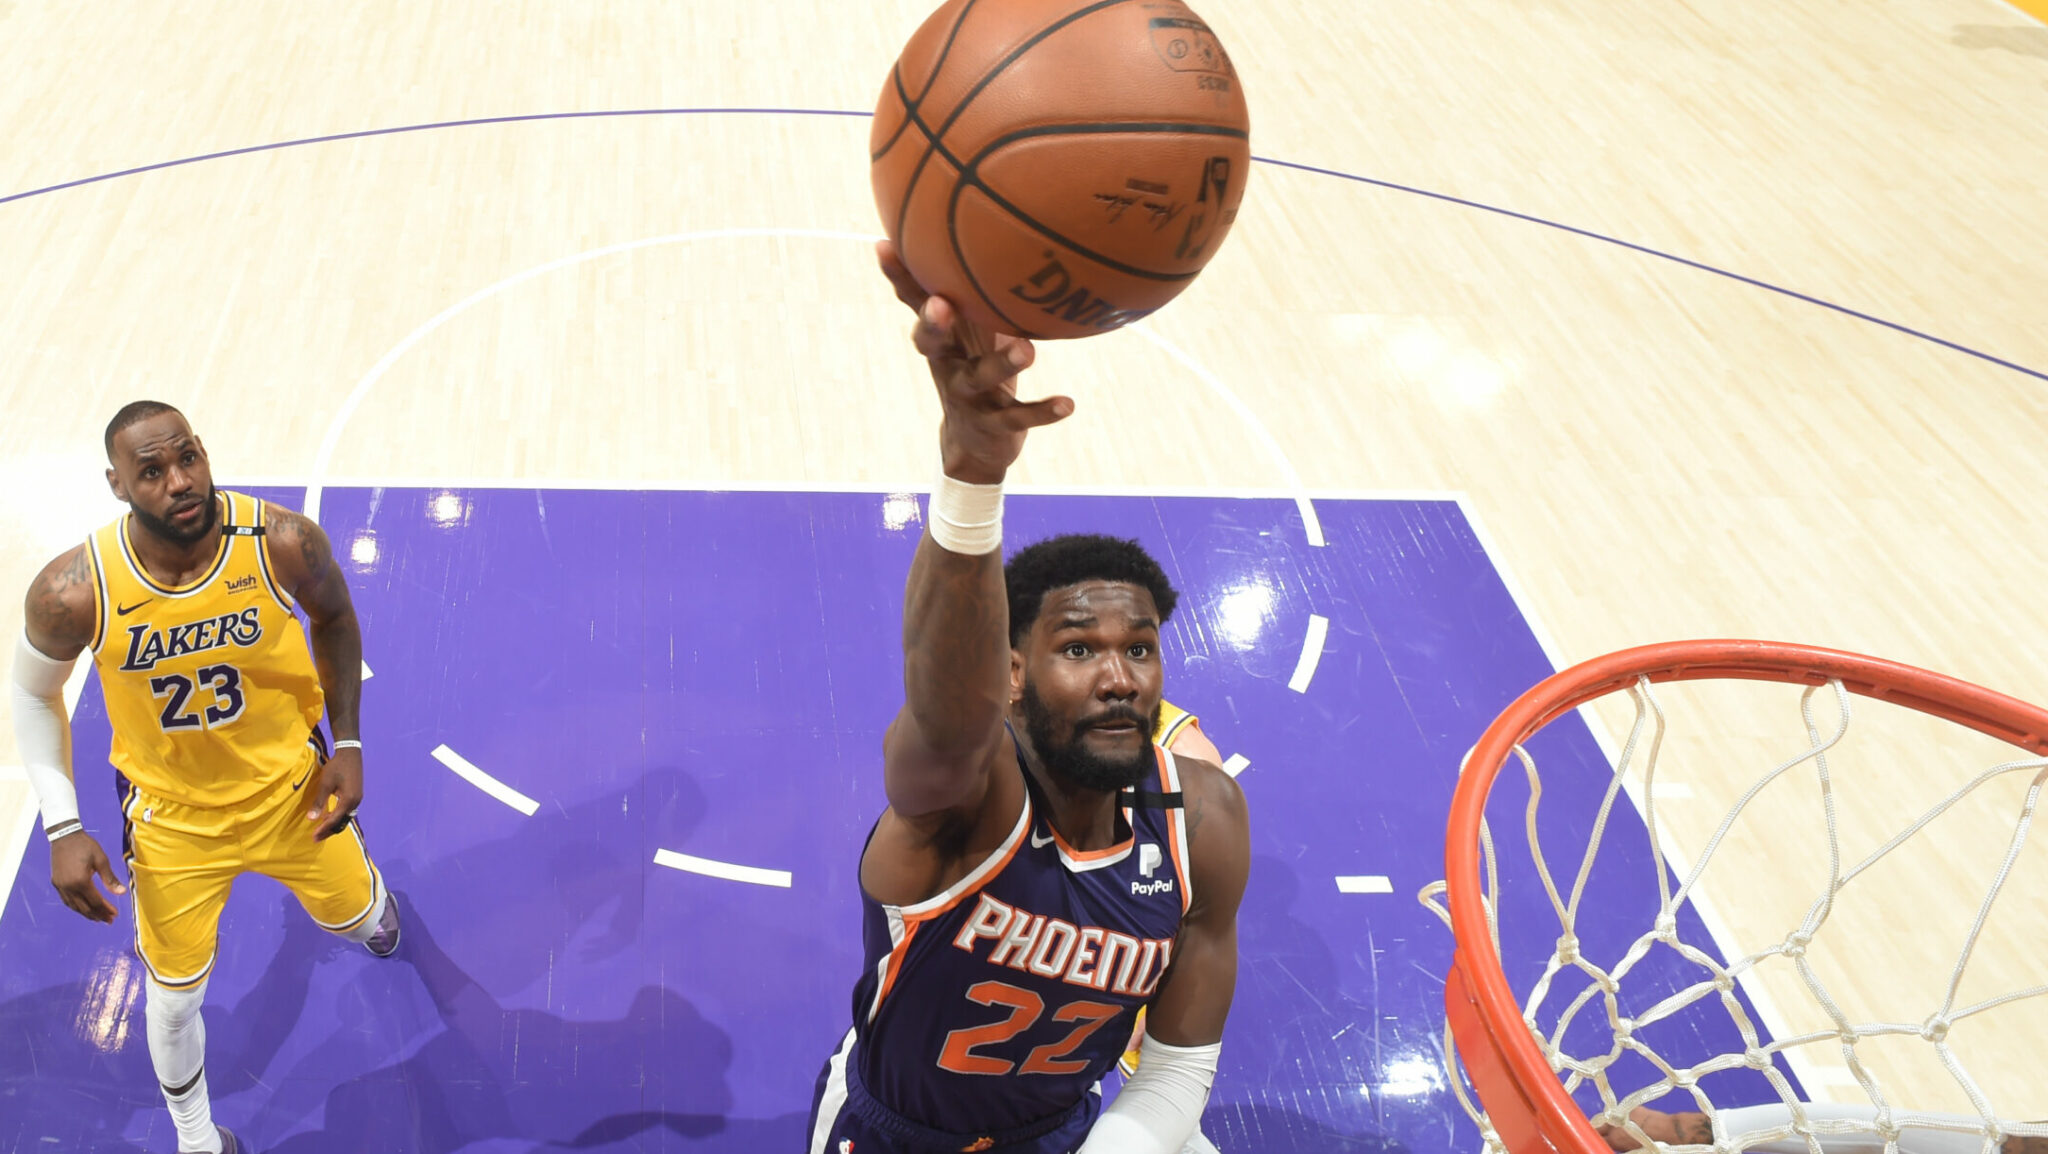 Matchup nightmare deepens for Suns vs 'underdog' Lakers